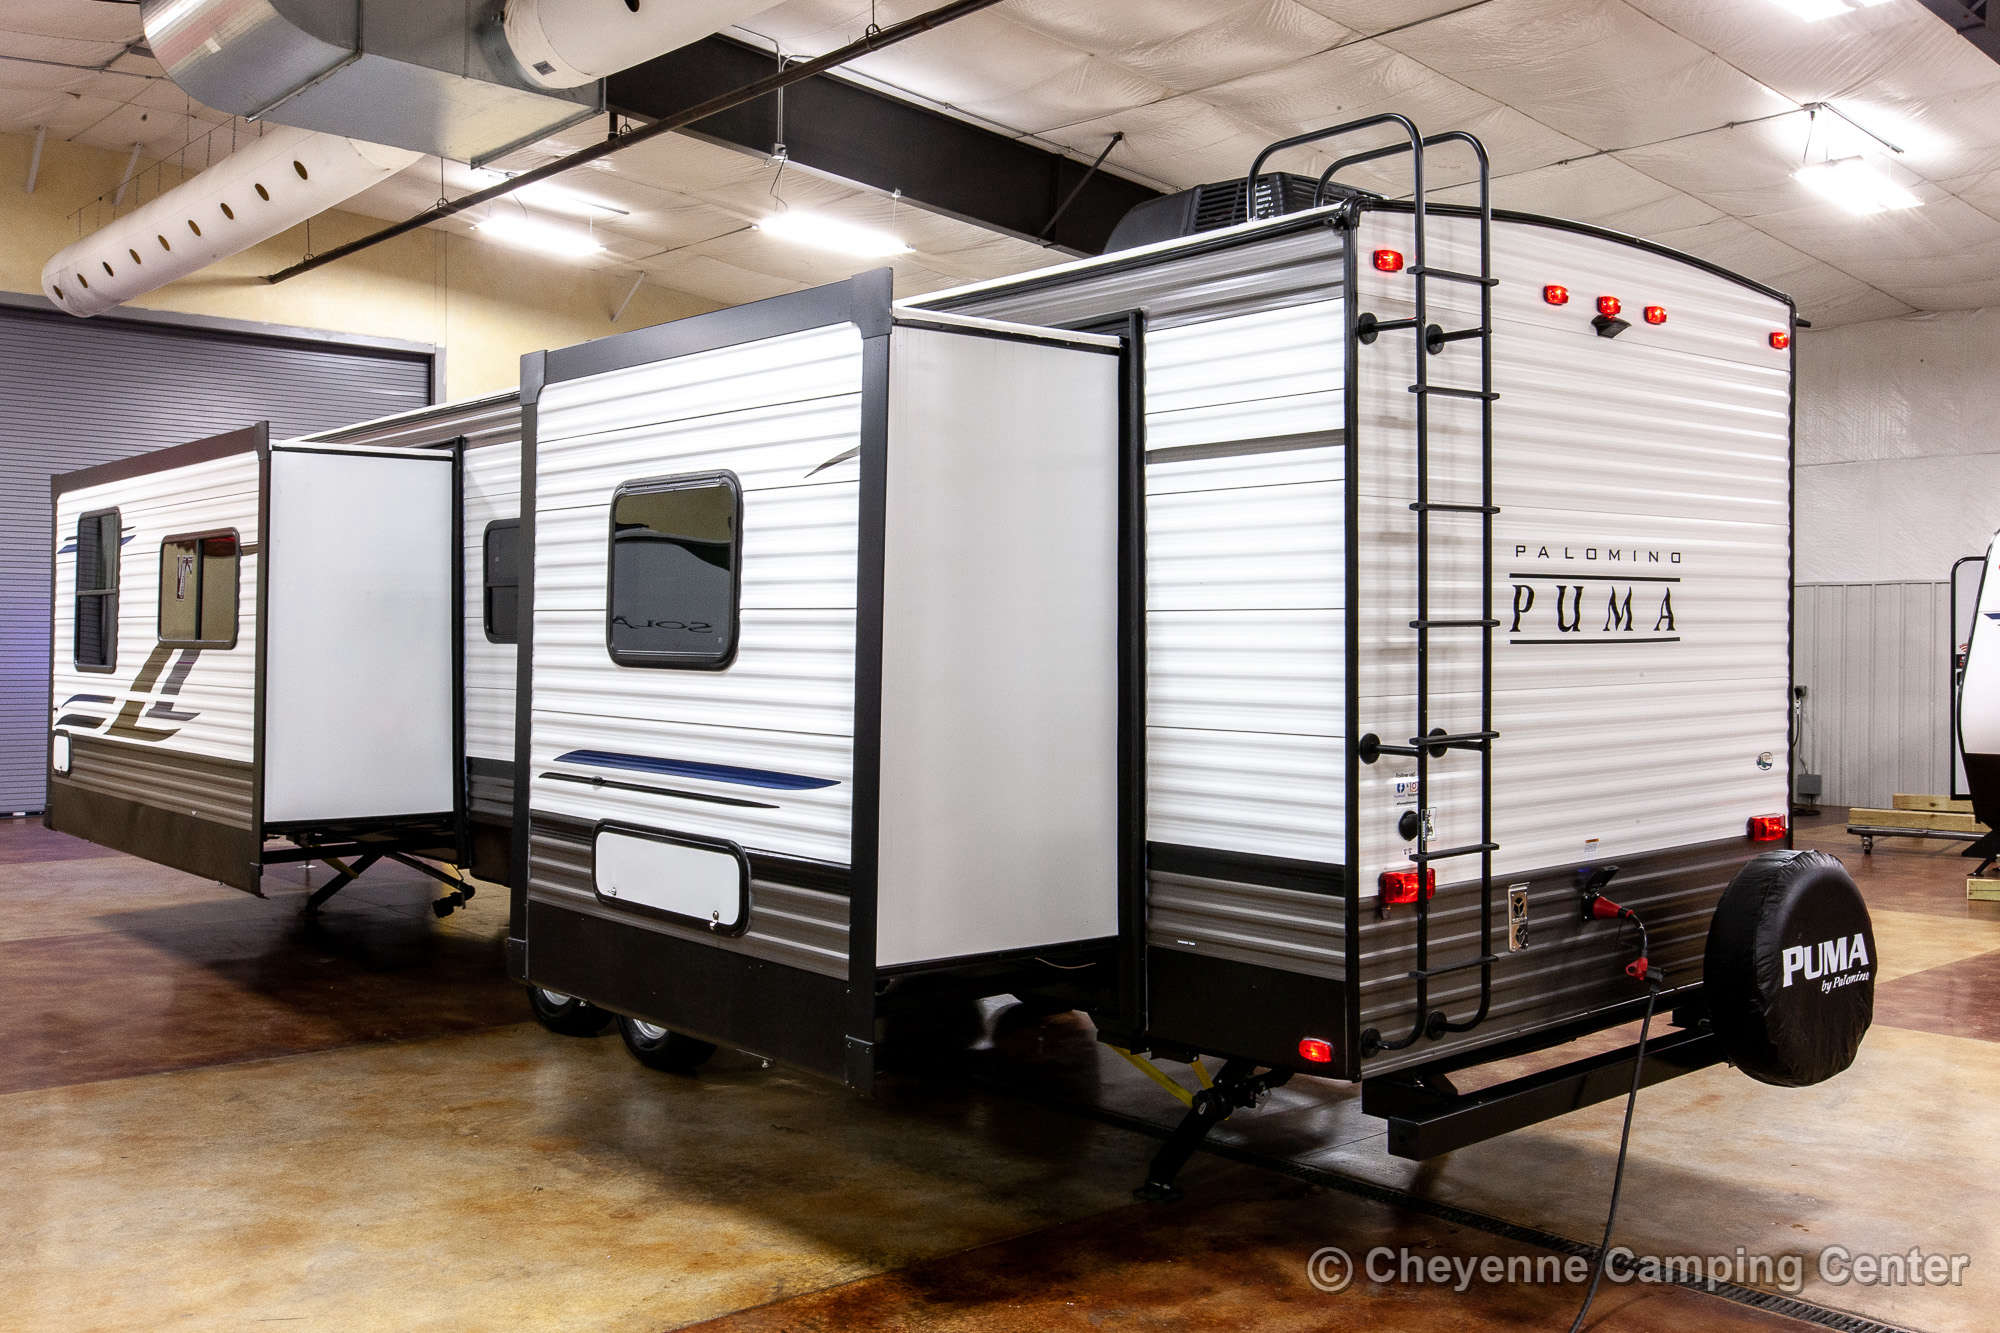 2021 Palomino Puma 31FKRK Front Kitchen Travel Trailer Exterior Image